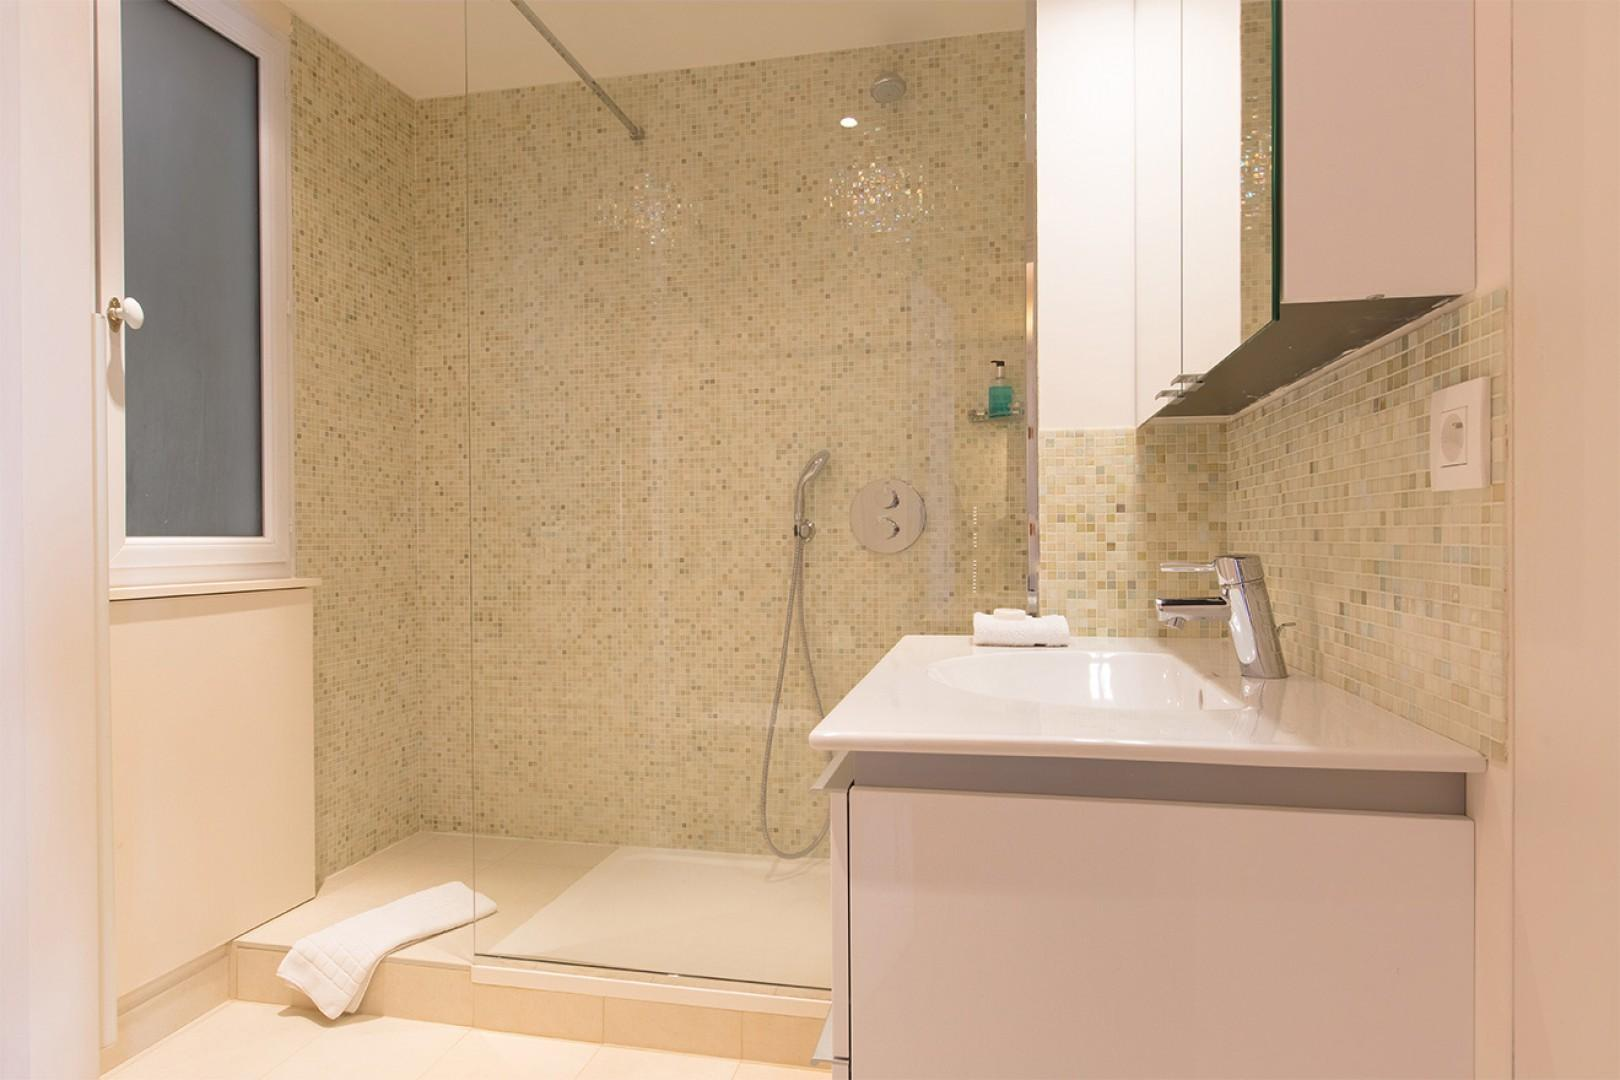 The spacious bathroom 1 comes with a shower, sink and toilet.